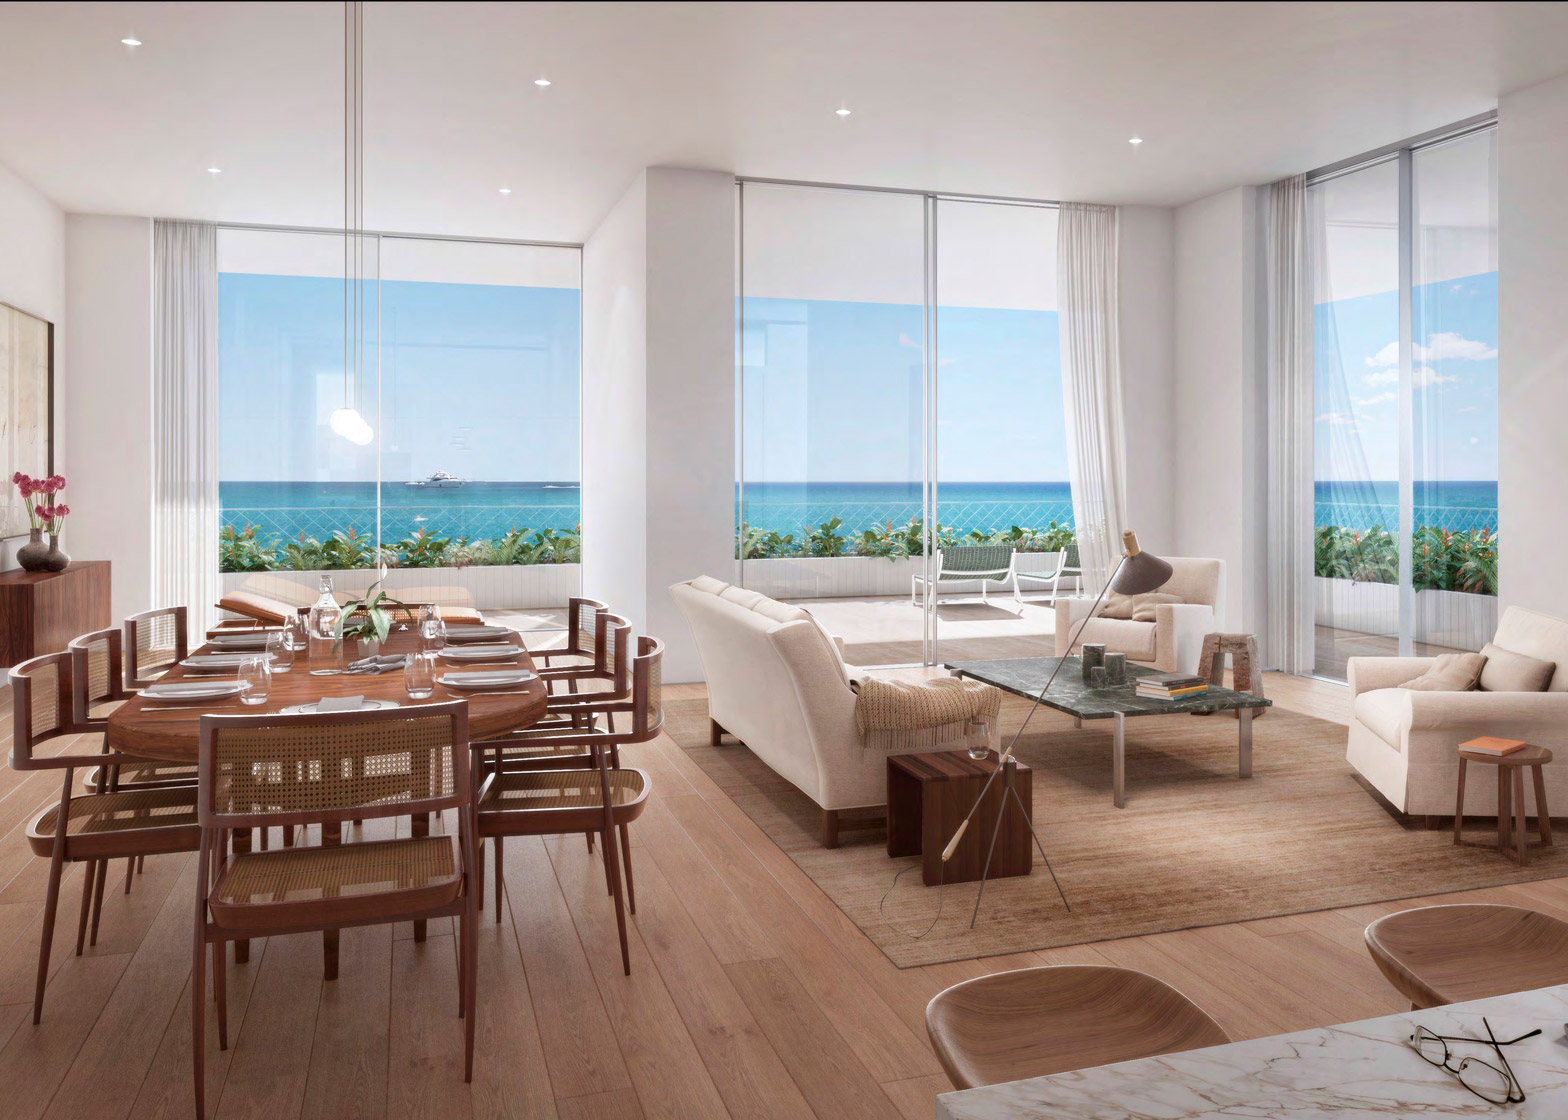 Fasano Hotel and Residences at Shore Club by Isay Weinfield